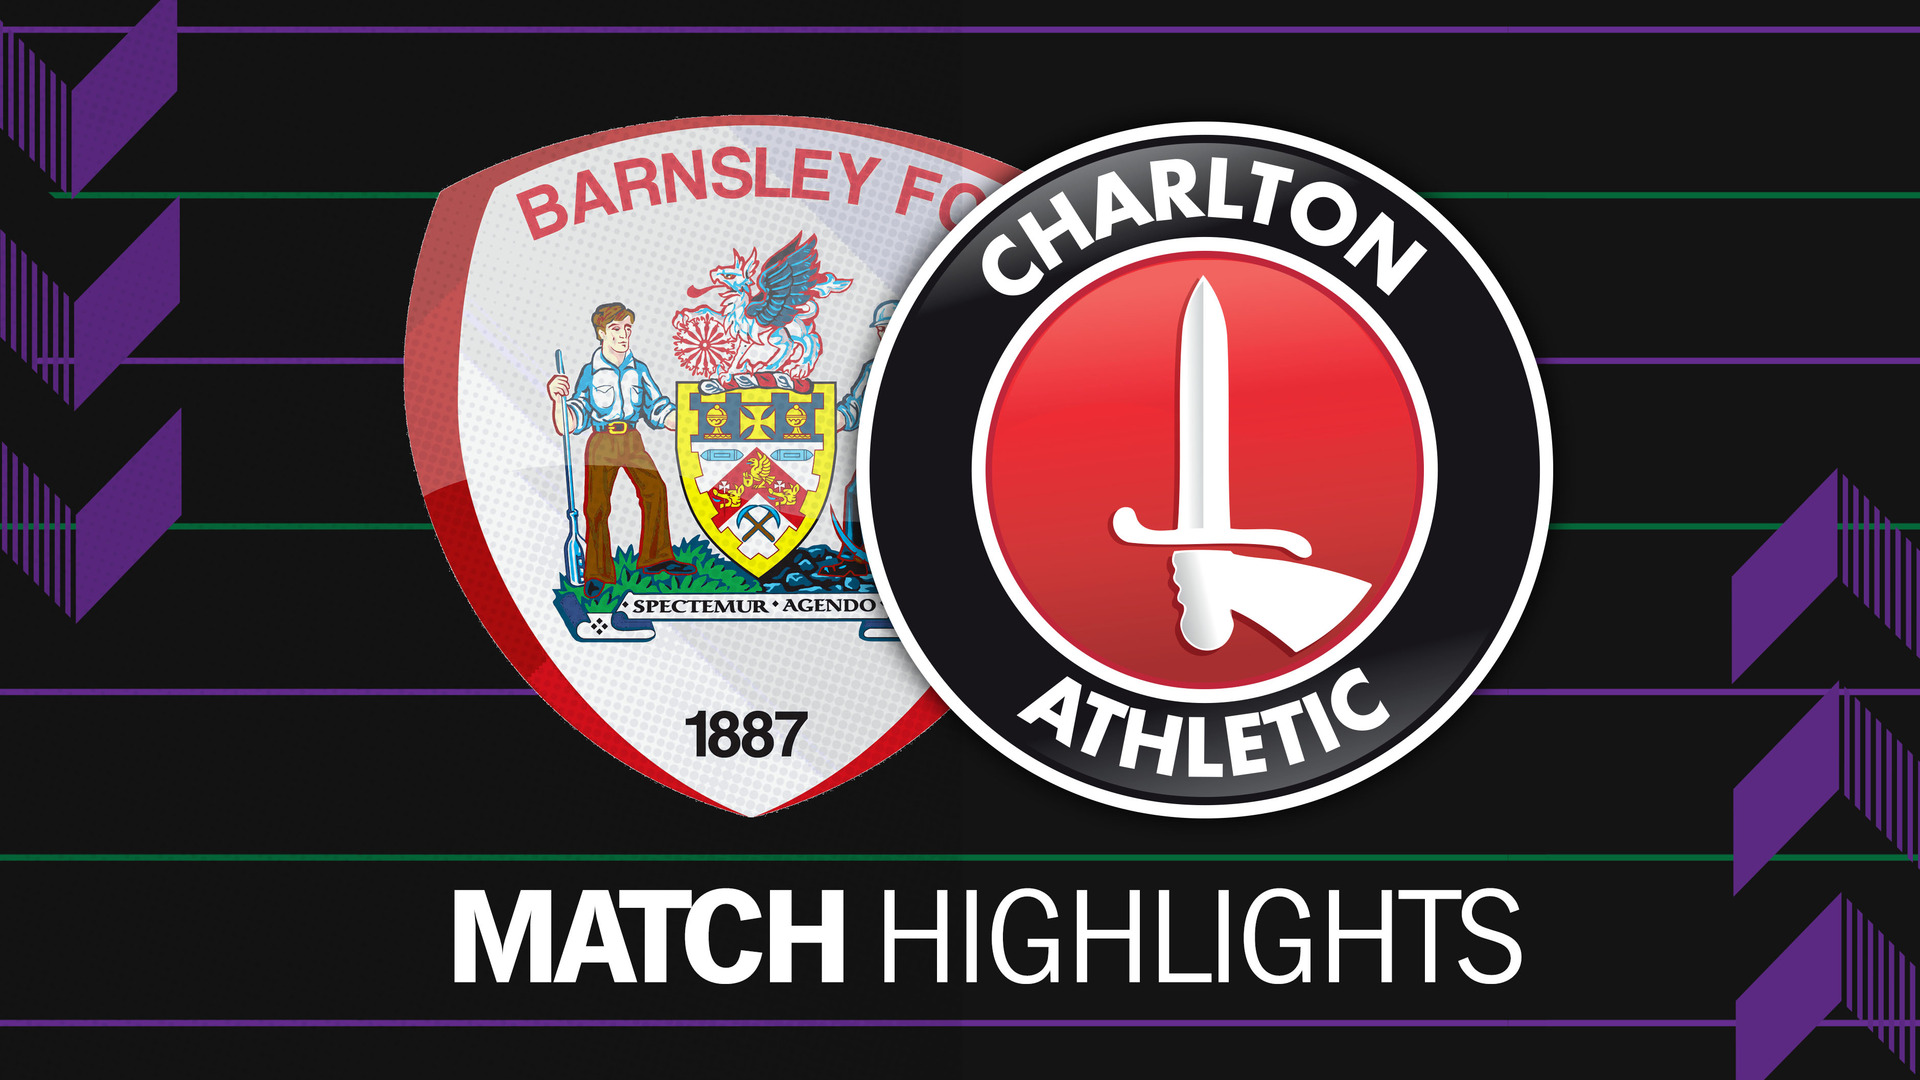 4 HIGHLIGHTS | Barnsley 2 Charlton 2 (August 2019)